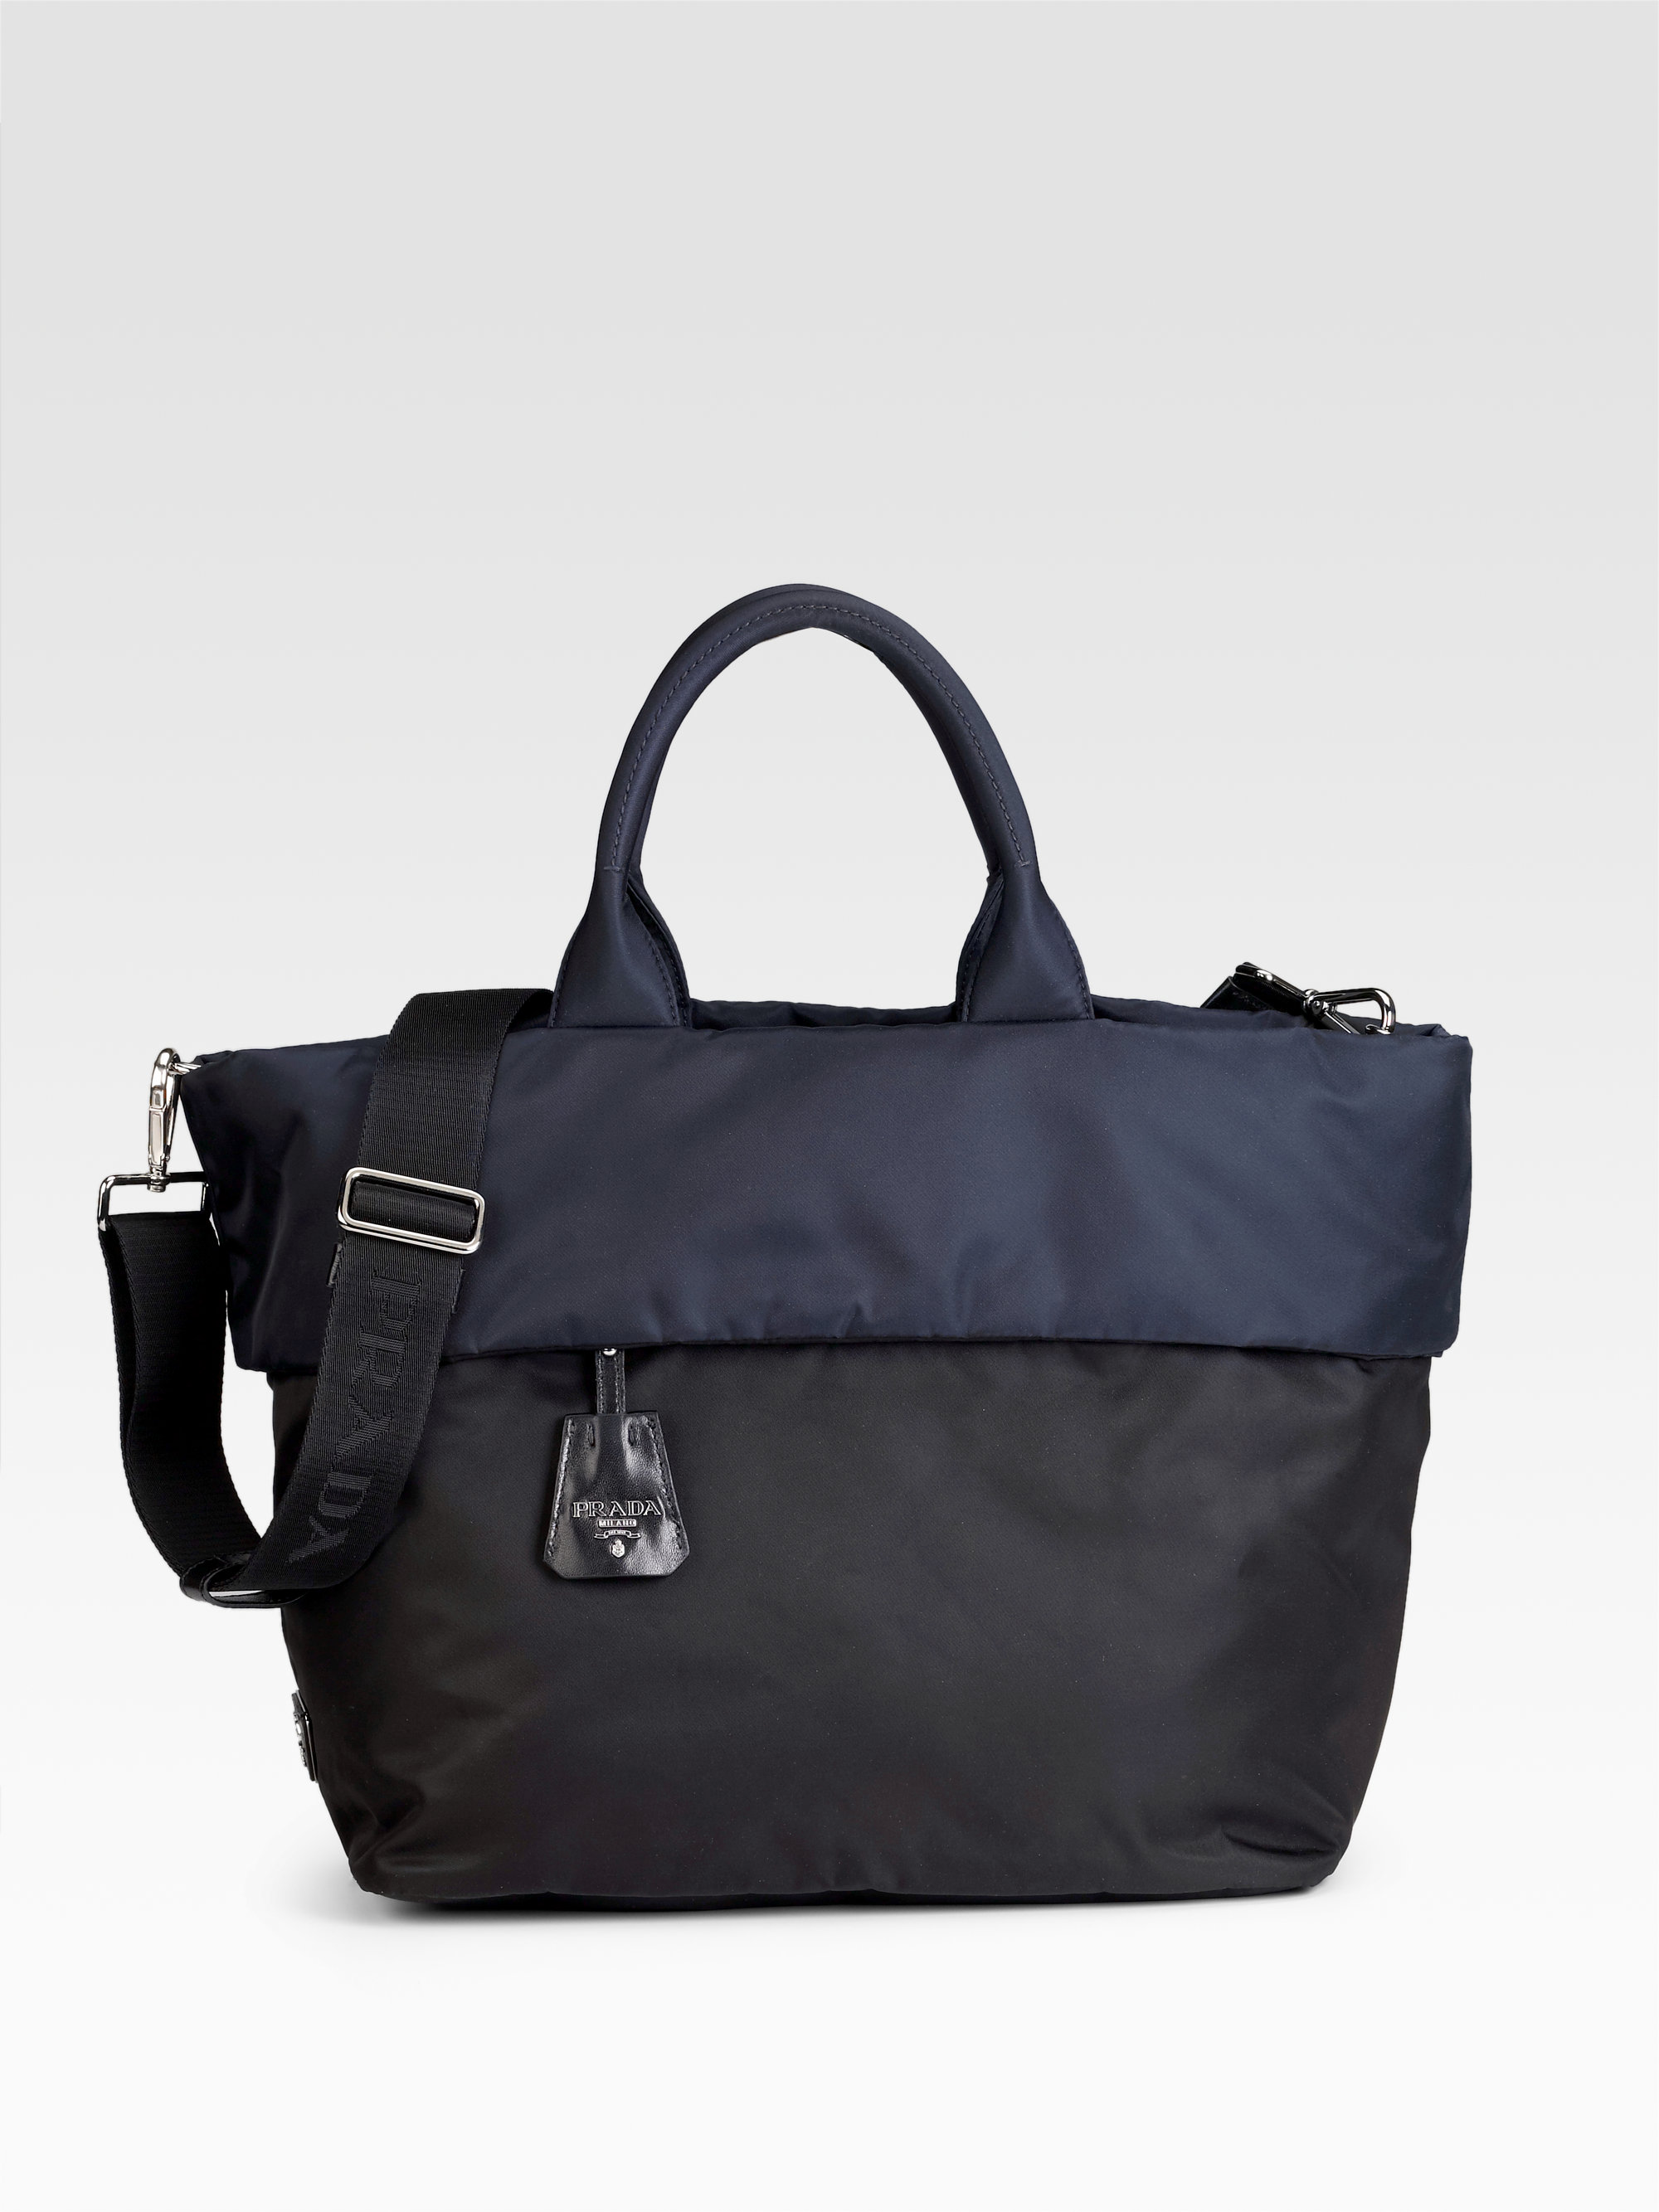 4968c5eee20c1f Prada Tote Black | Stanford Center for Opportunity Policy in Education